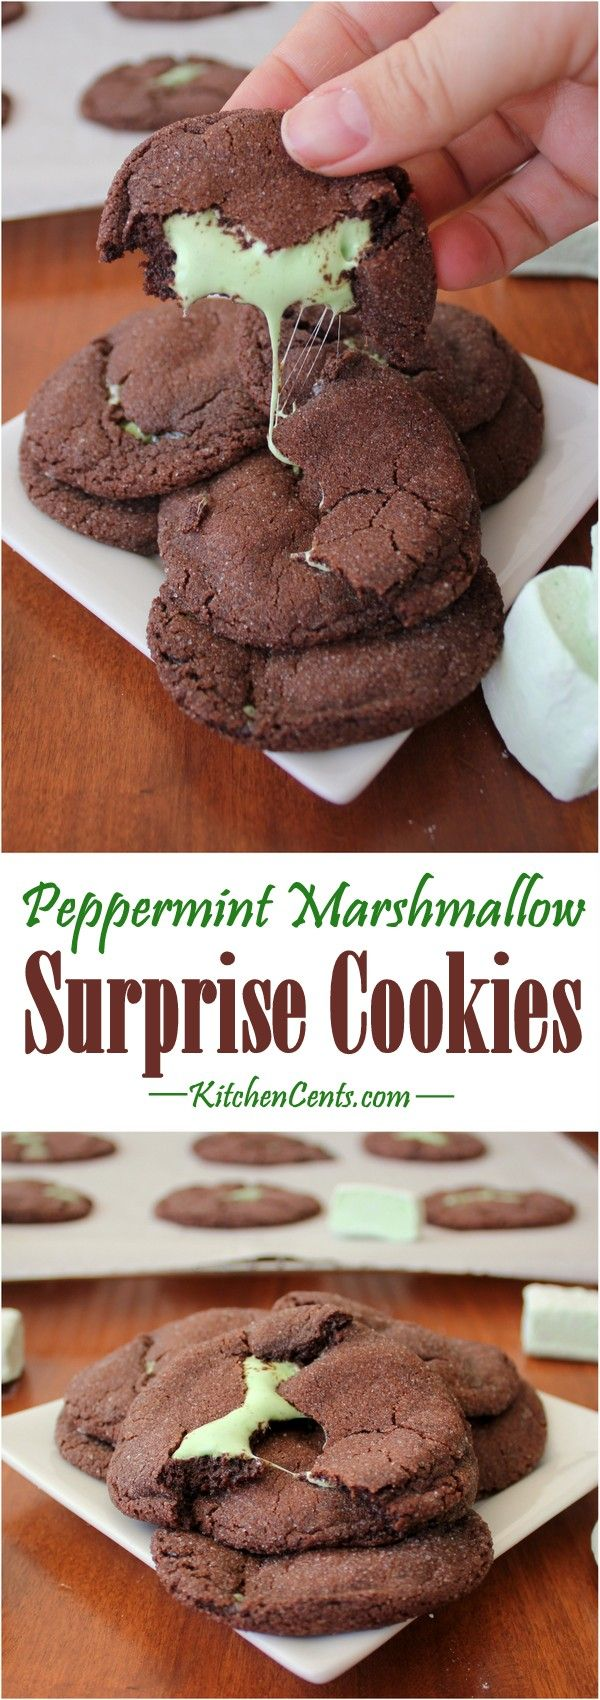 Mint Marshmallow Chocolate Cookie | Soft brownie-like chocolate exterior with a mint marshmallow surprise inside | These marshmallow stuffed cookies bake in 5 minutes or less | The best mint marshmallow stuffed chocolate cookie recipe | Quick and easy cookie recipe that tastes delicious | Soft and gooey center | This chocolate cookie recipe will be the hit of any gathering | This is a great make ahead cookie recipe | Perfect as a St. Patrick's Day cookie or Christmas cookie